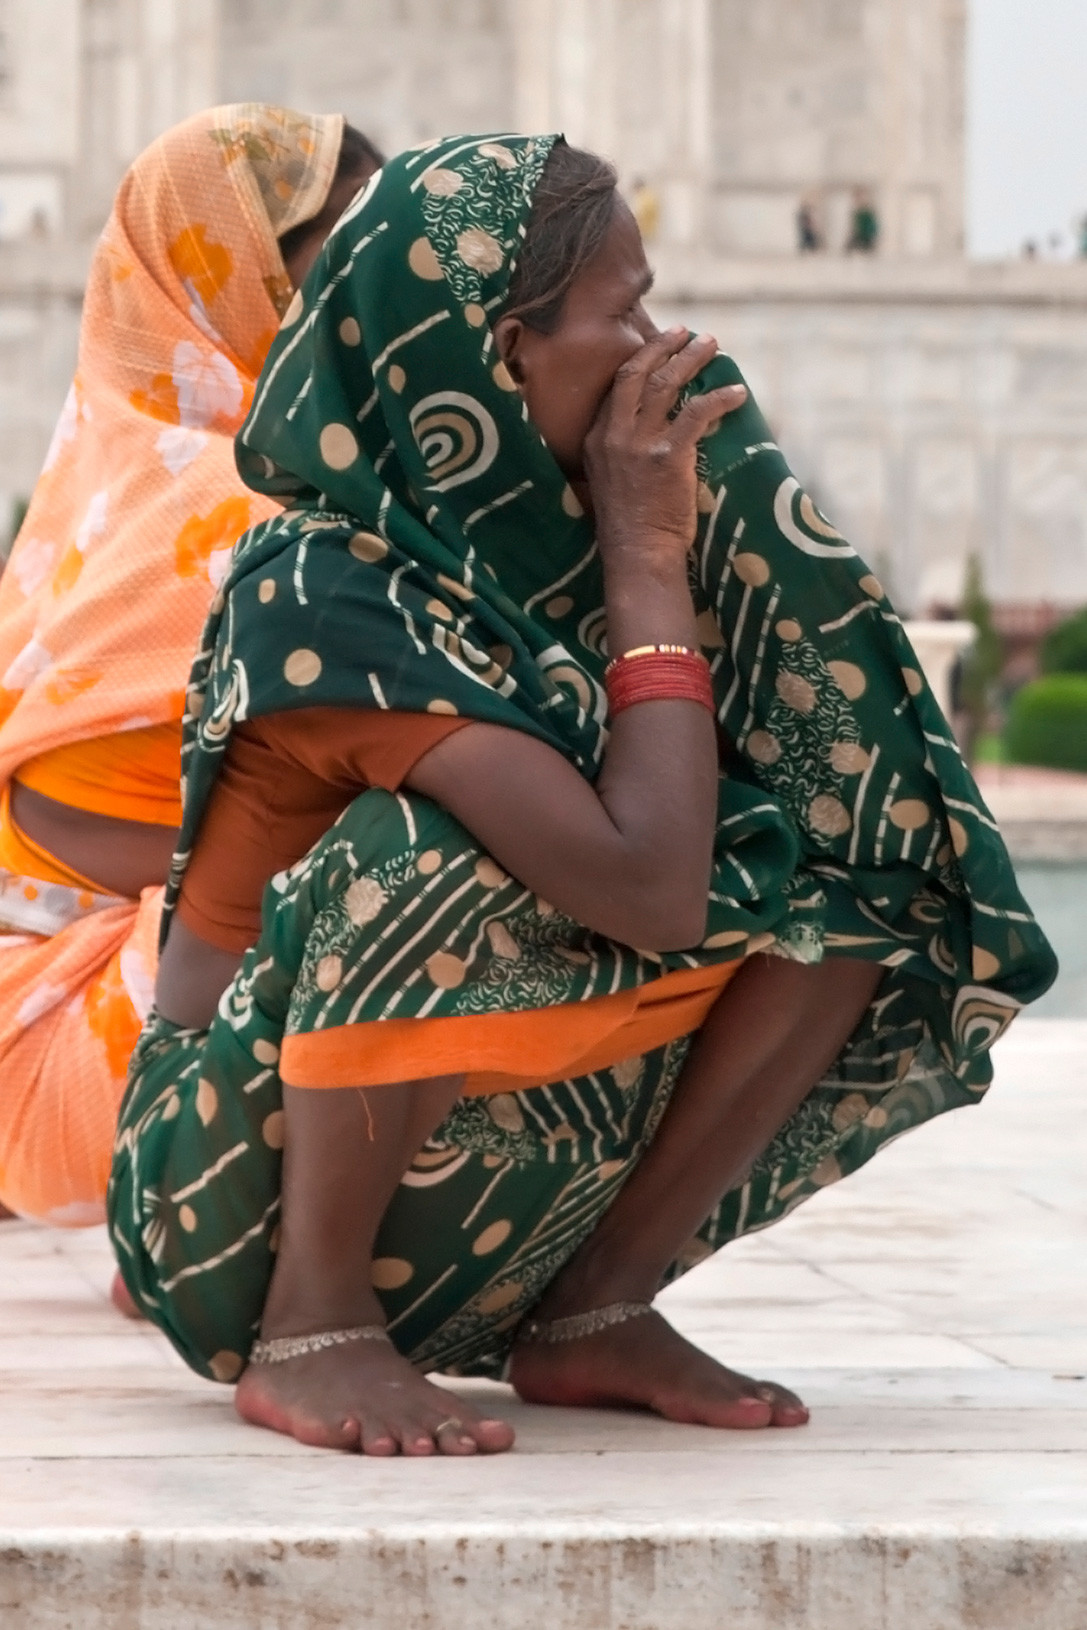 An Indian woman resting in a natural flat-footed deep squat